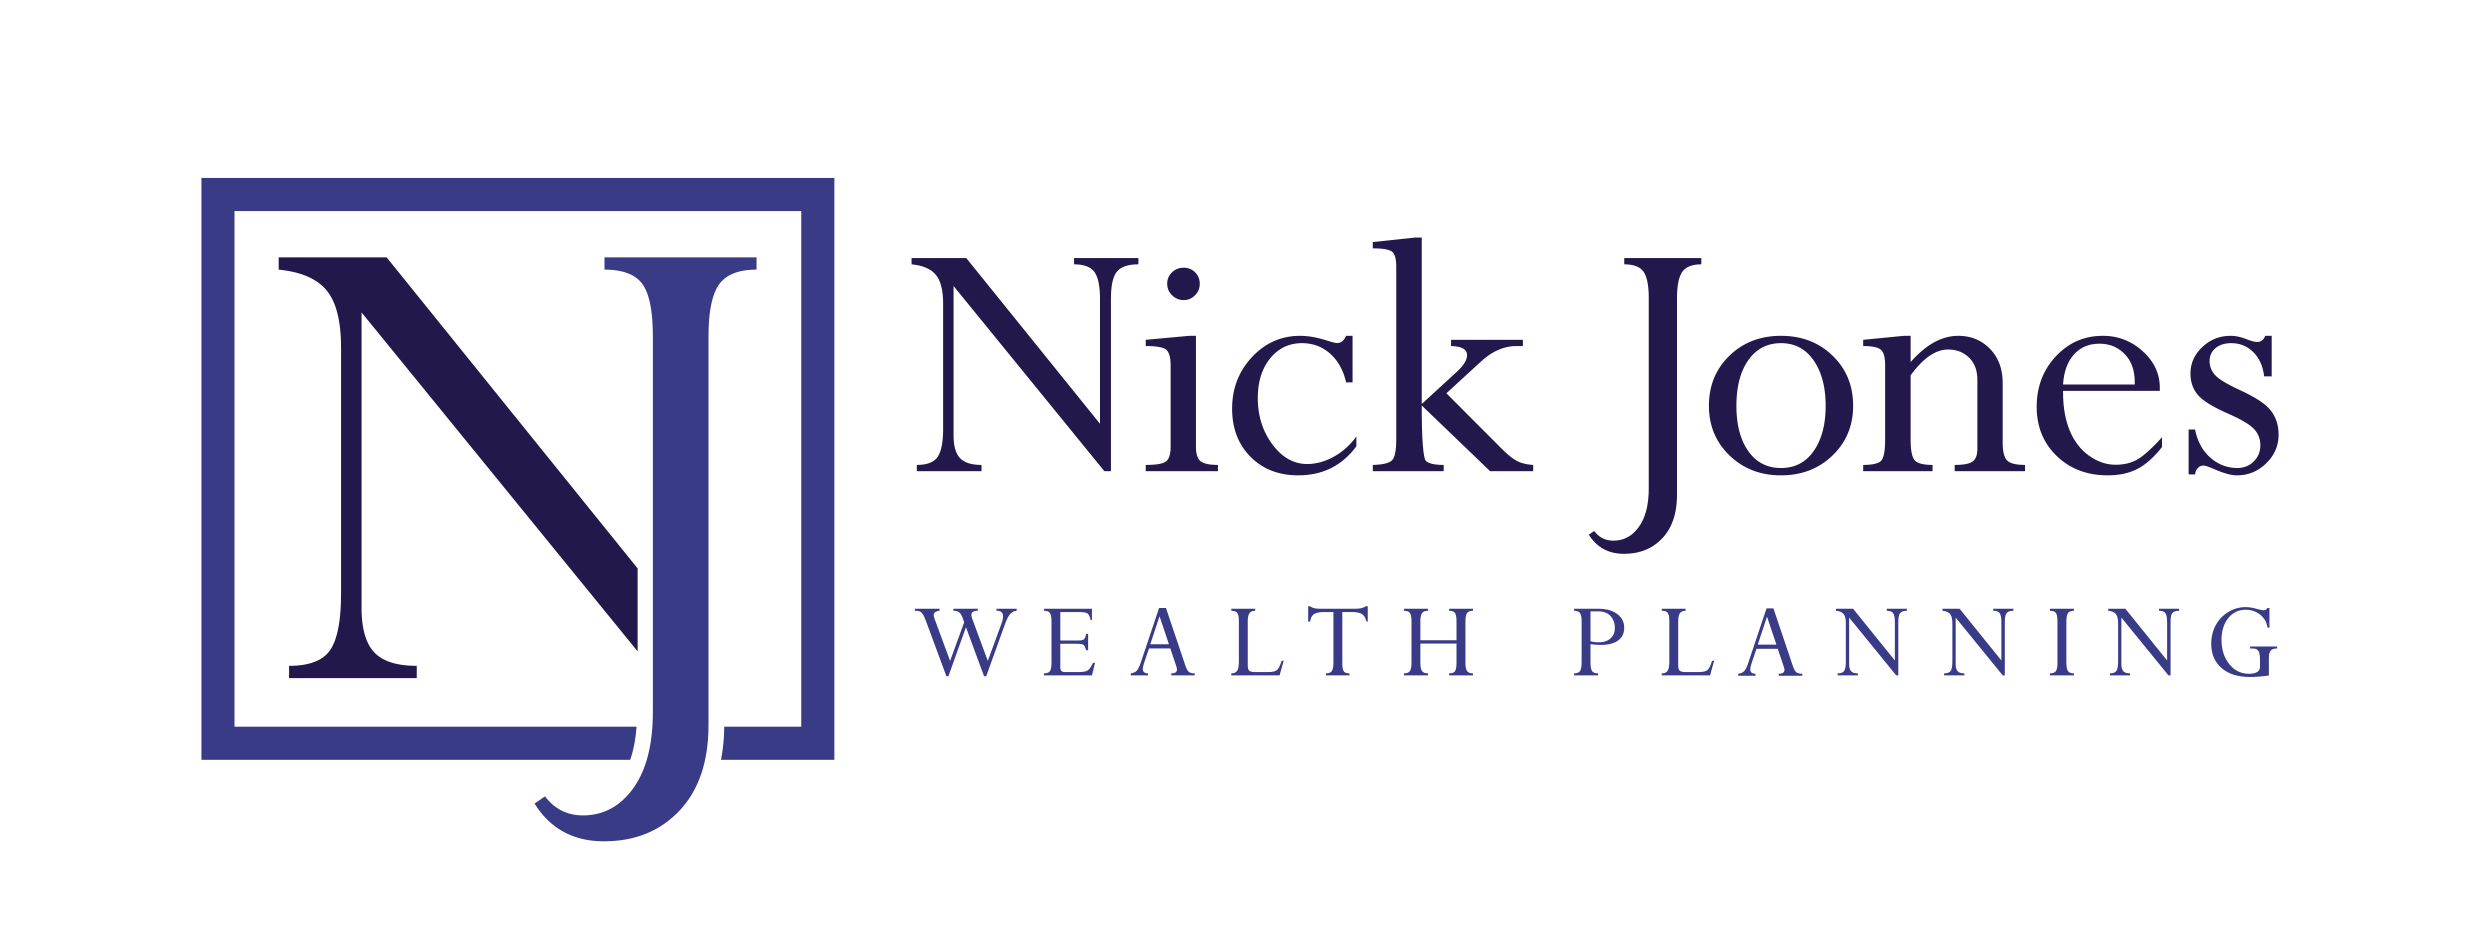 nick jones Logo Landscape